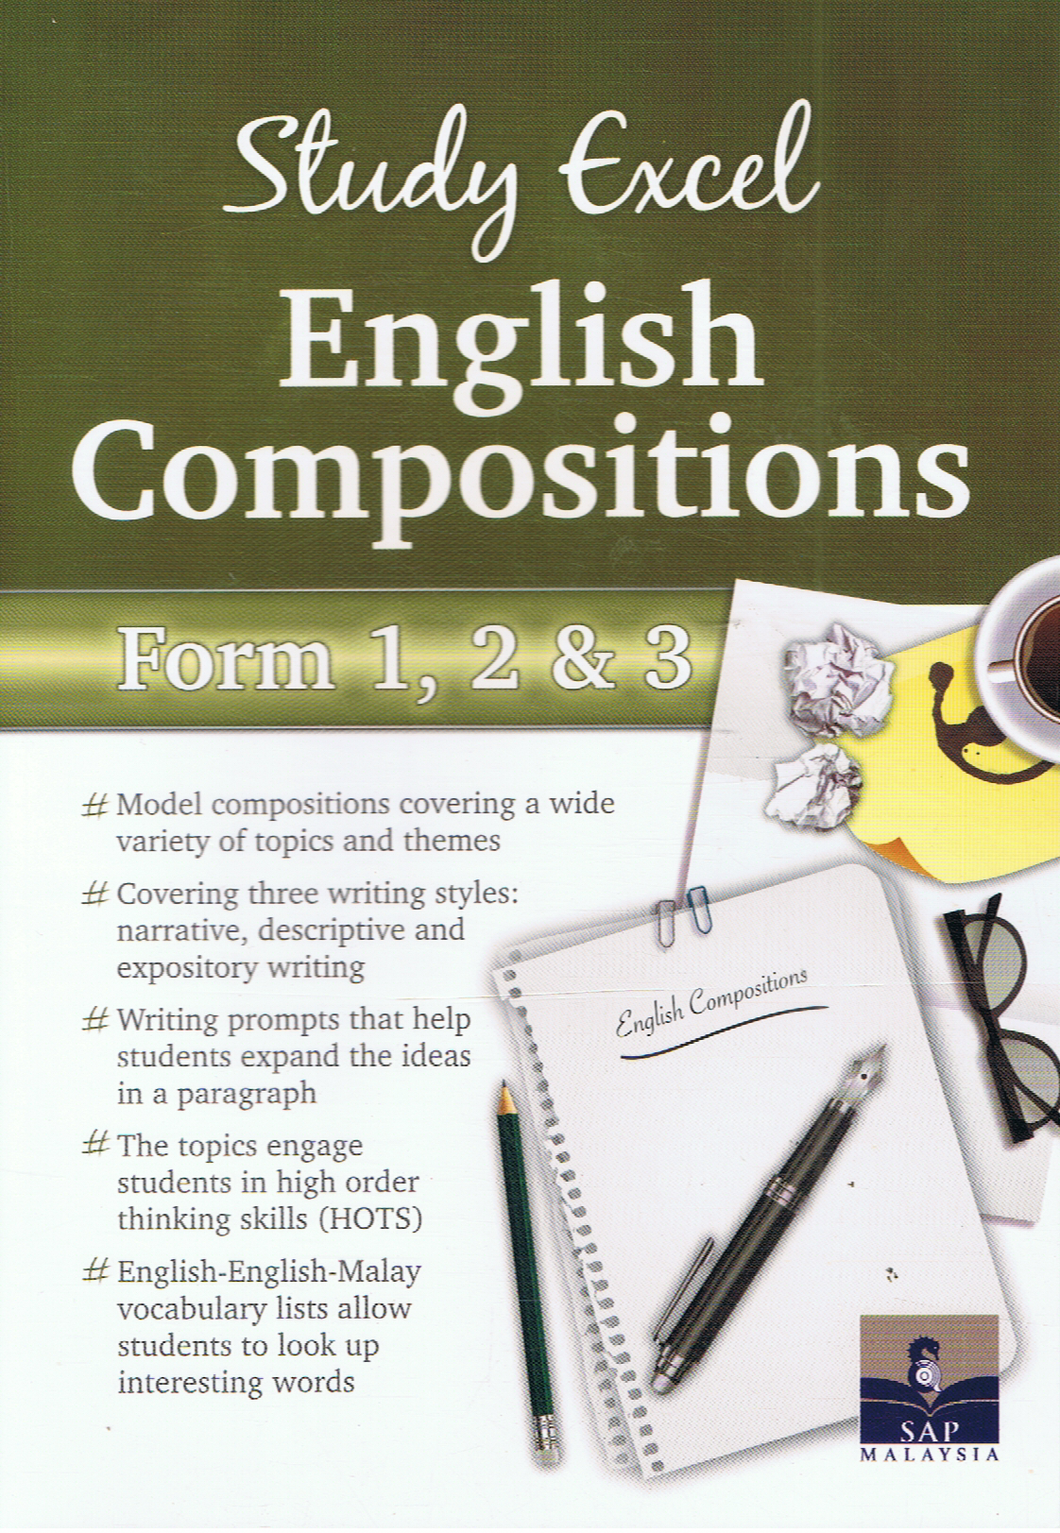 SAP Pendidikan-Study Excel English Composition Form 1,2&3-9789673215690-BukuDBP.com